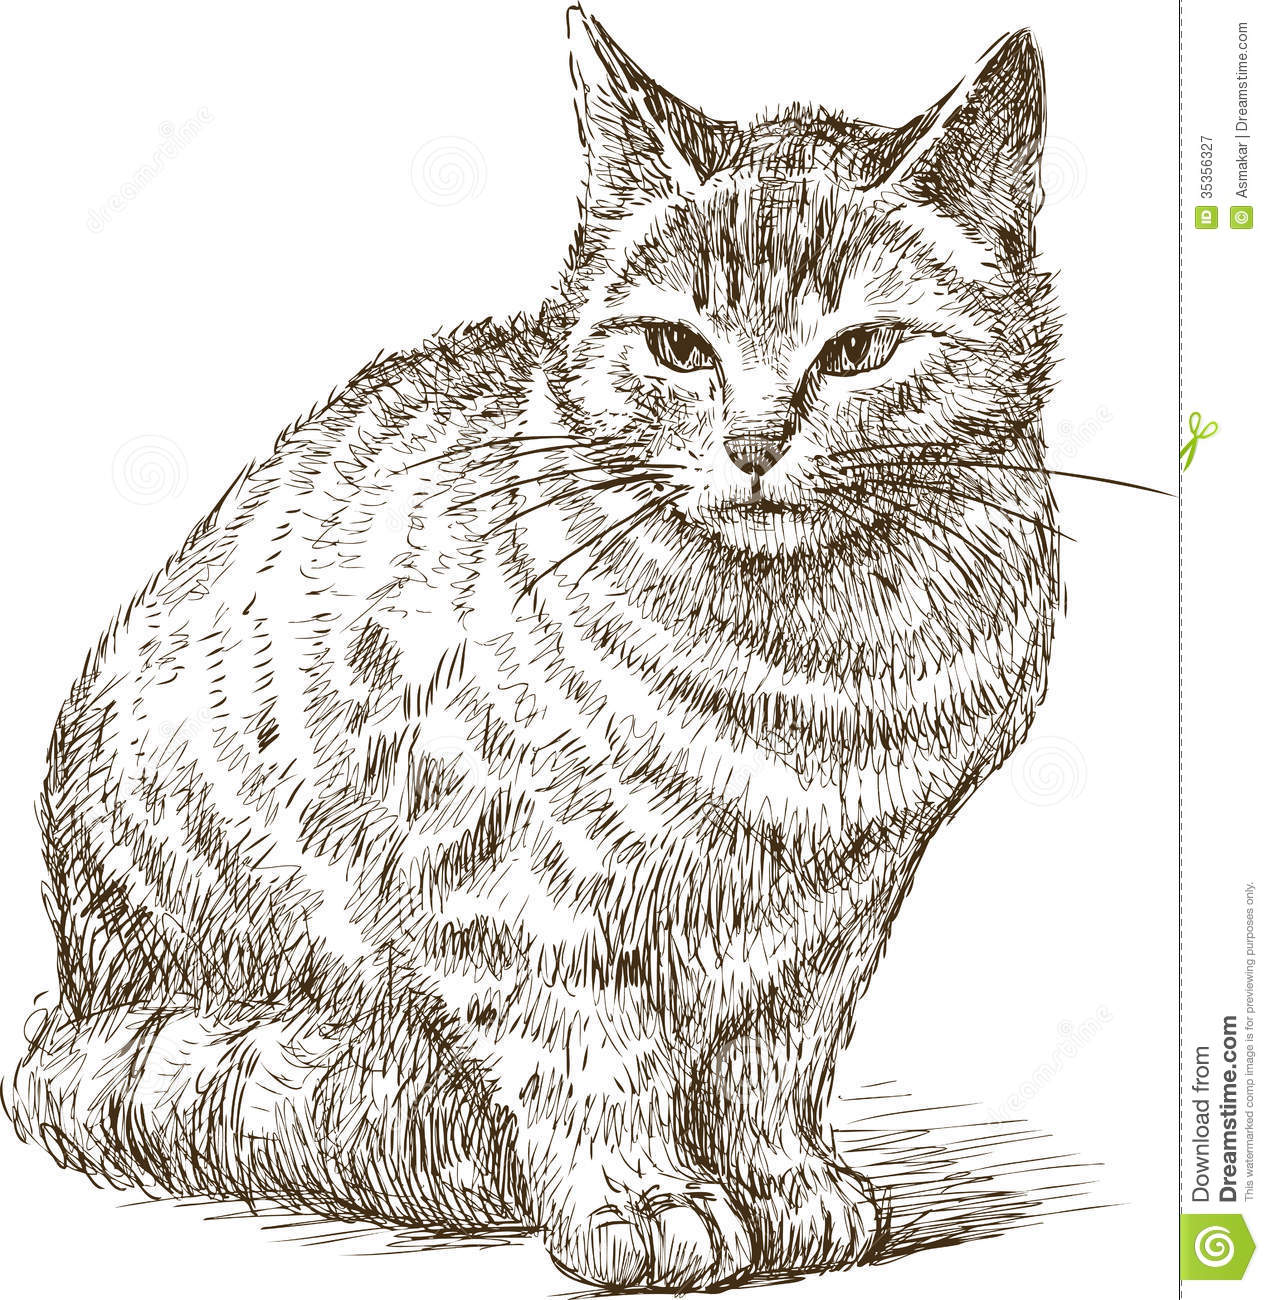 Cat Sketch Drawing at GetDrawings.com | Free for personal use Cat ...